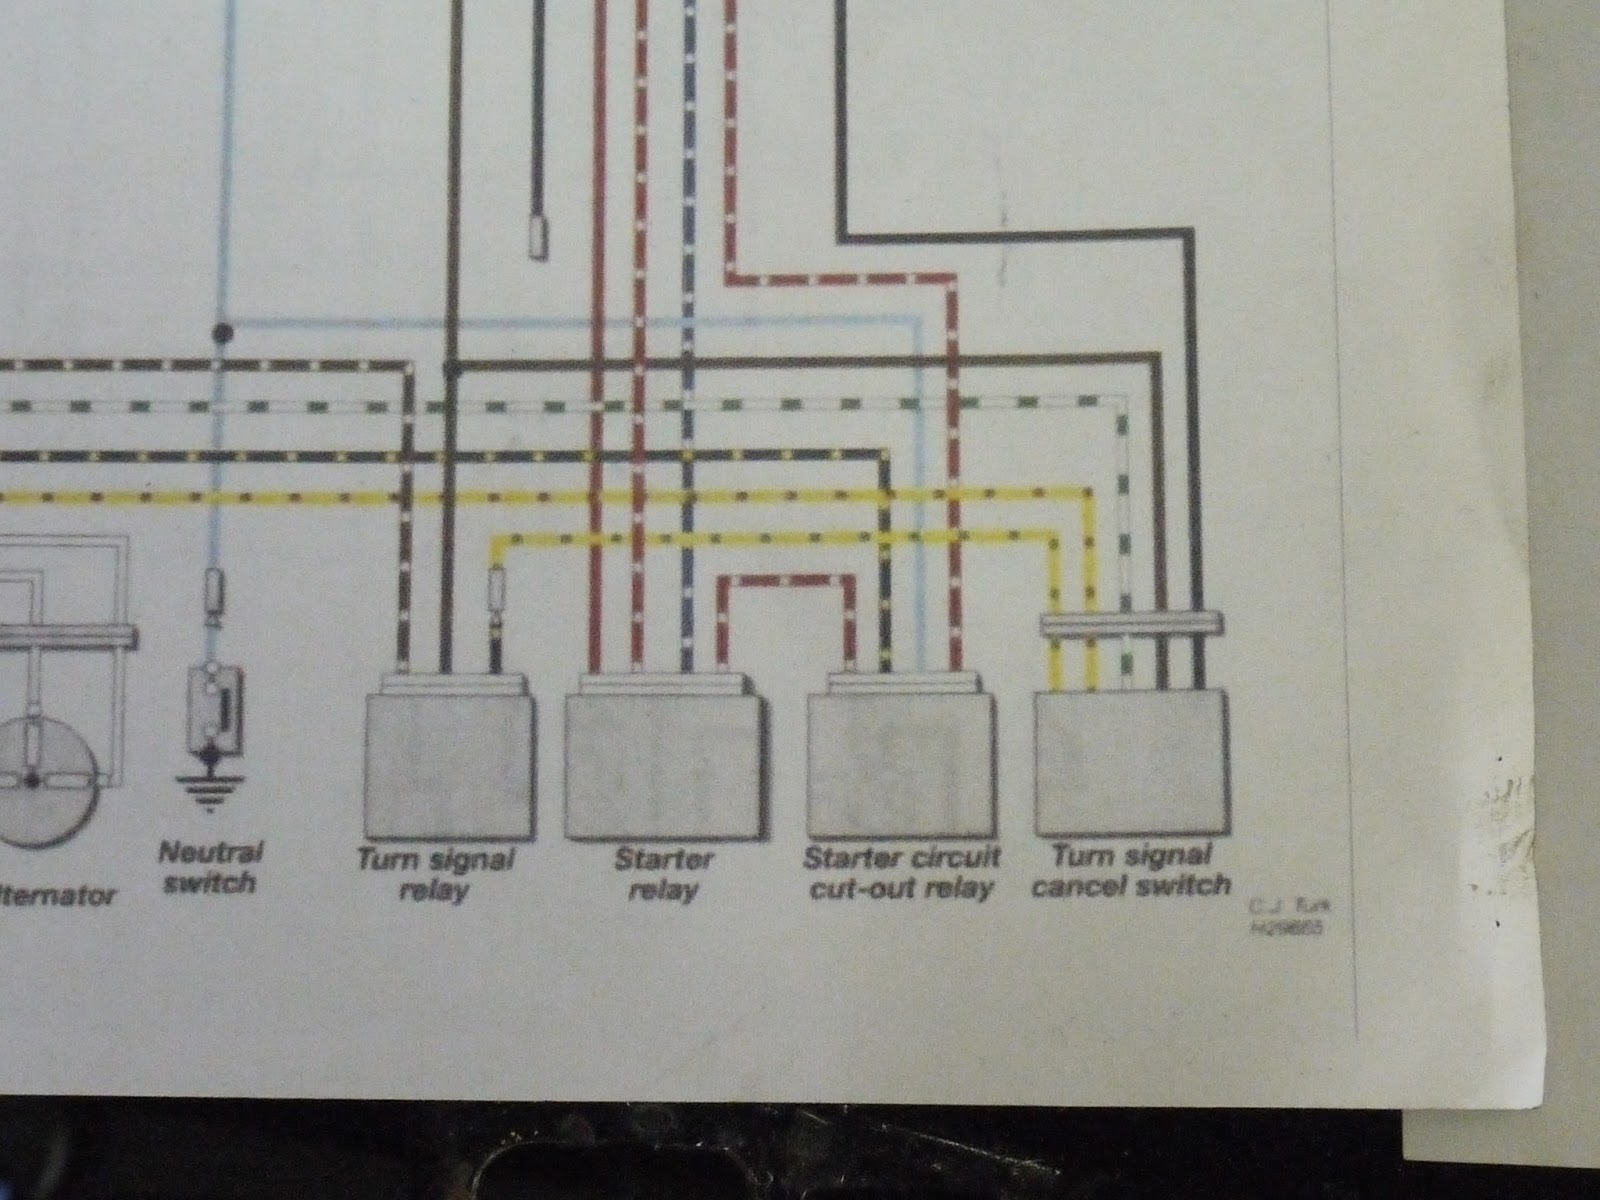 hight resolution of the solenoid on the right is the one we want to eliminate the light blue cable comes down from the neutral switch and the black and yellow one from the